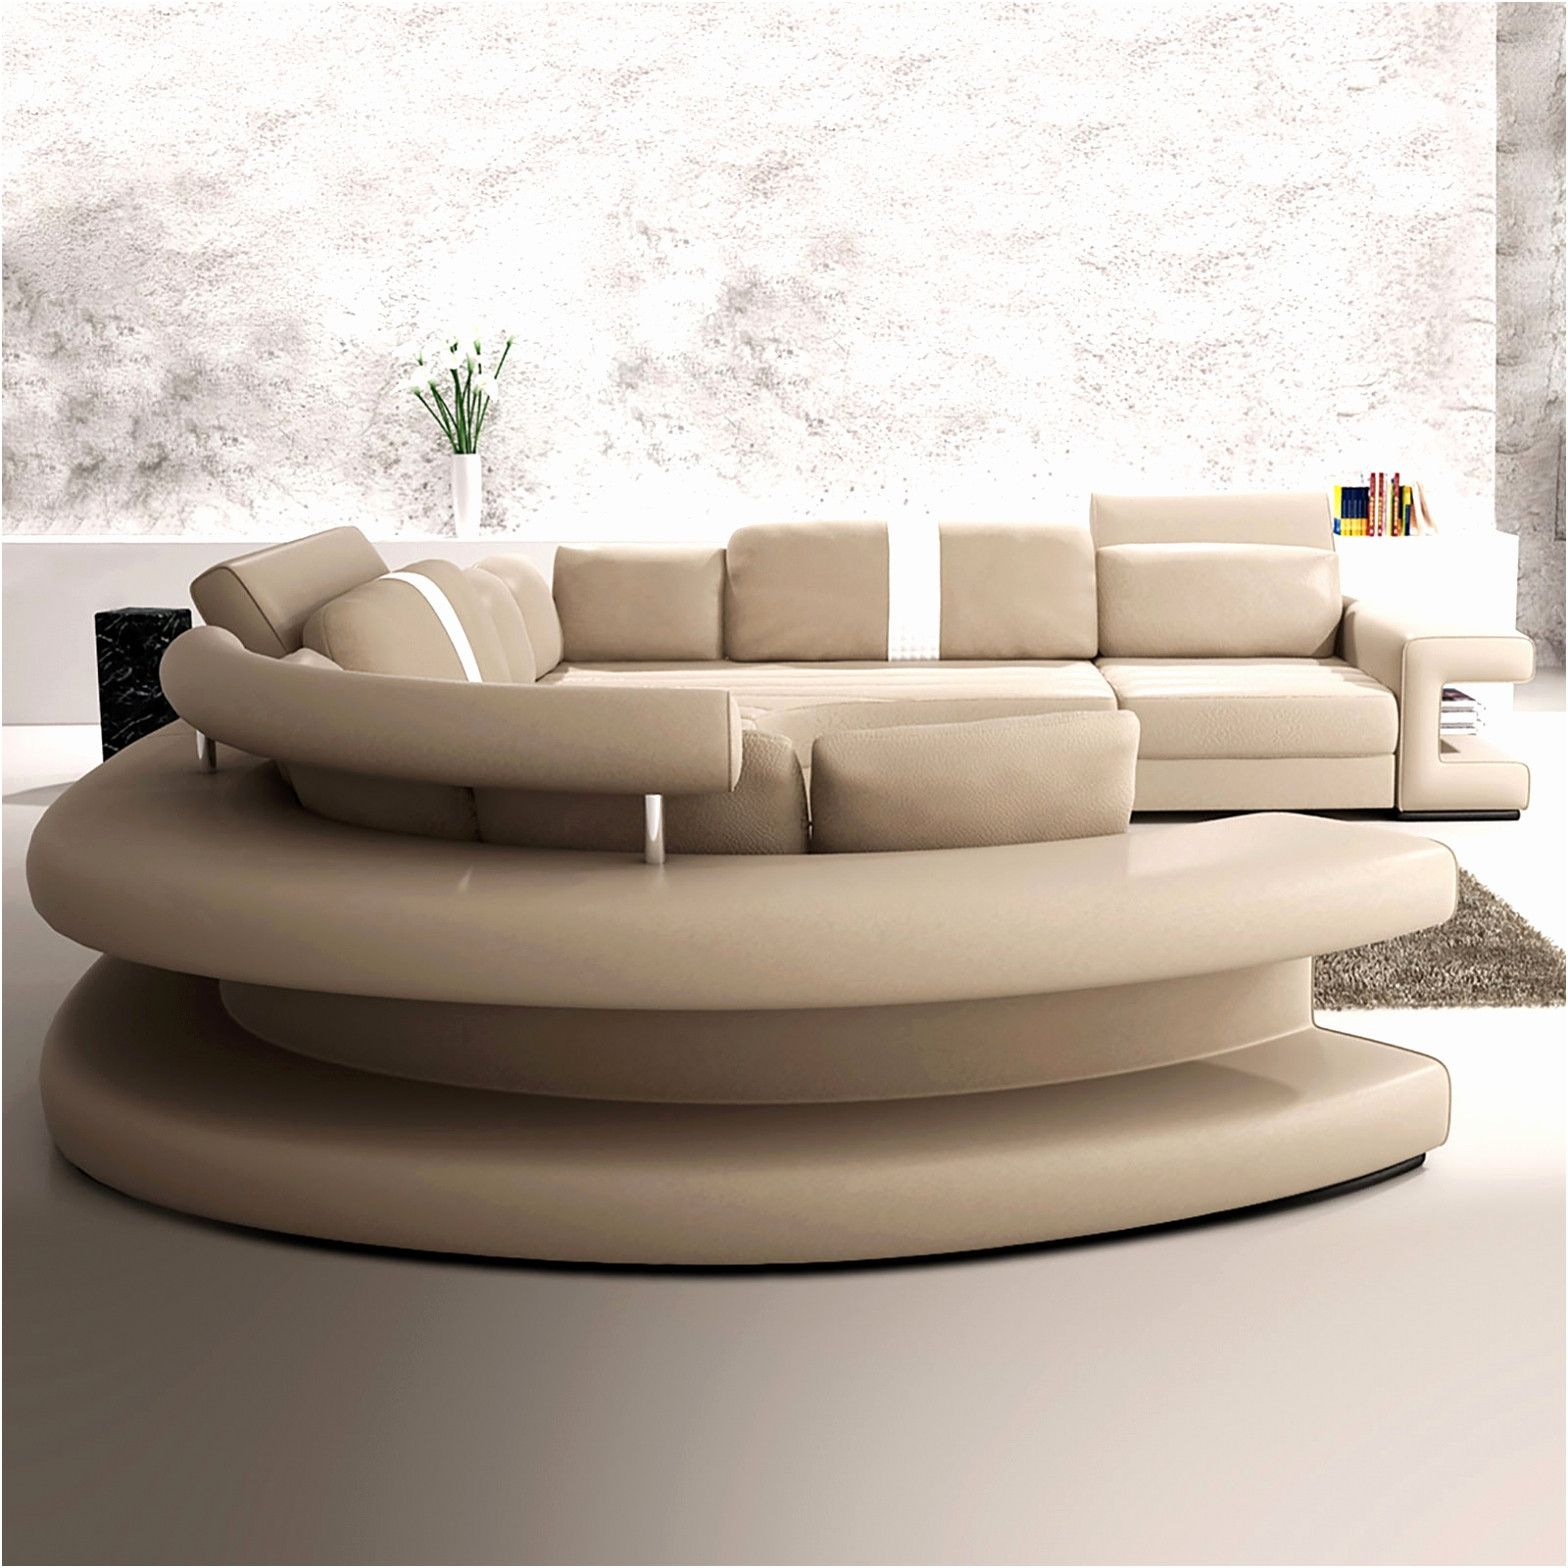 Prachtig Couch U Form Couch Mobel Pinterest Sofa Couch And